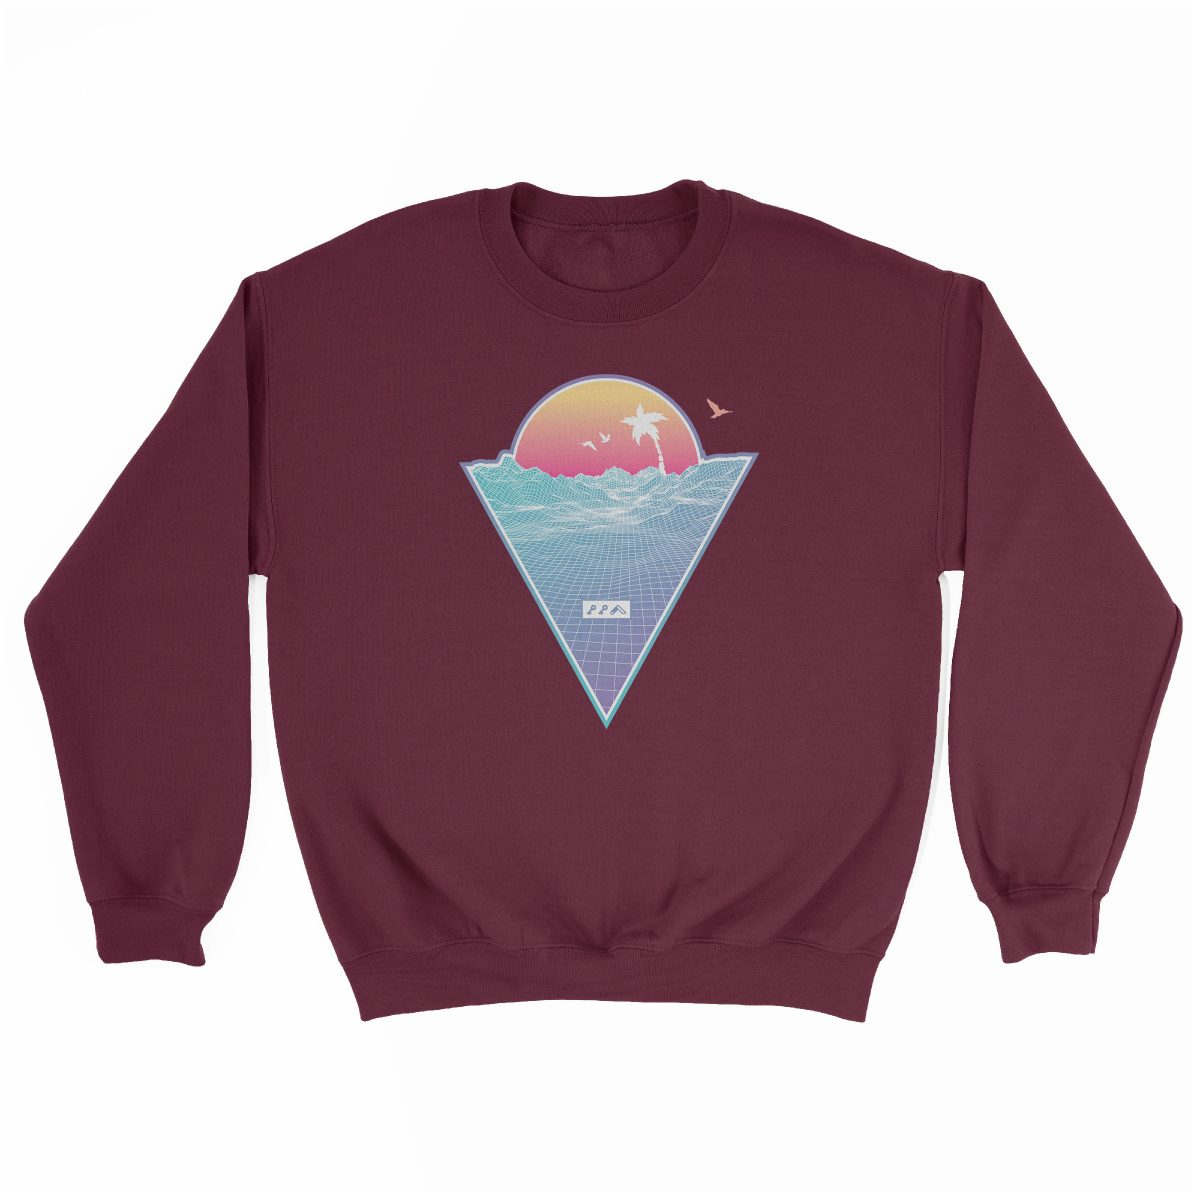 """OFF THE GRID"" cali vibes retro 80s design sweatshirt maroon at kikicutt.com"